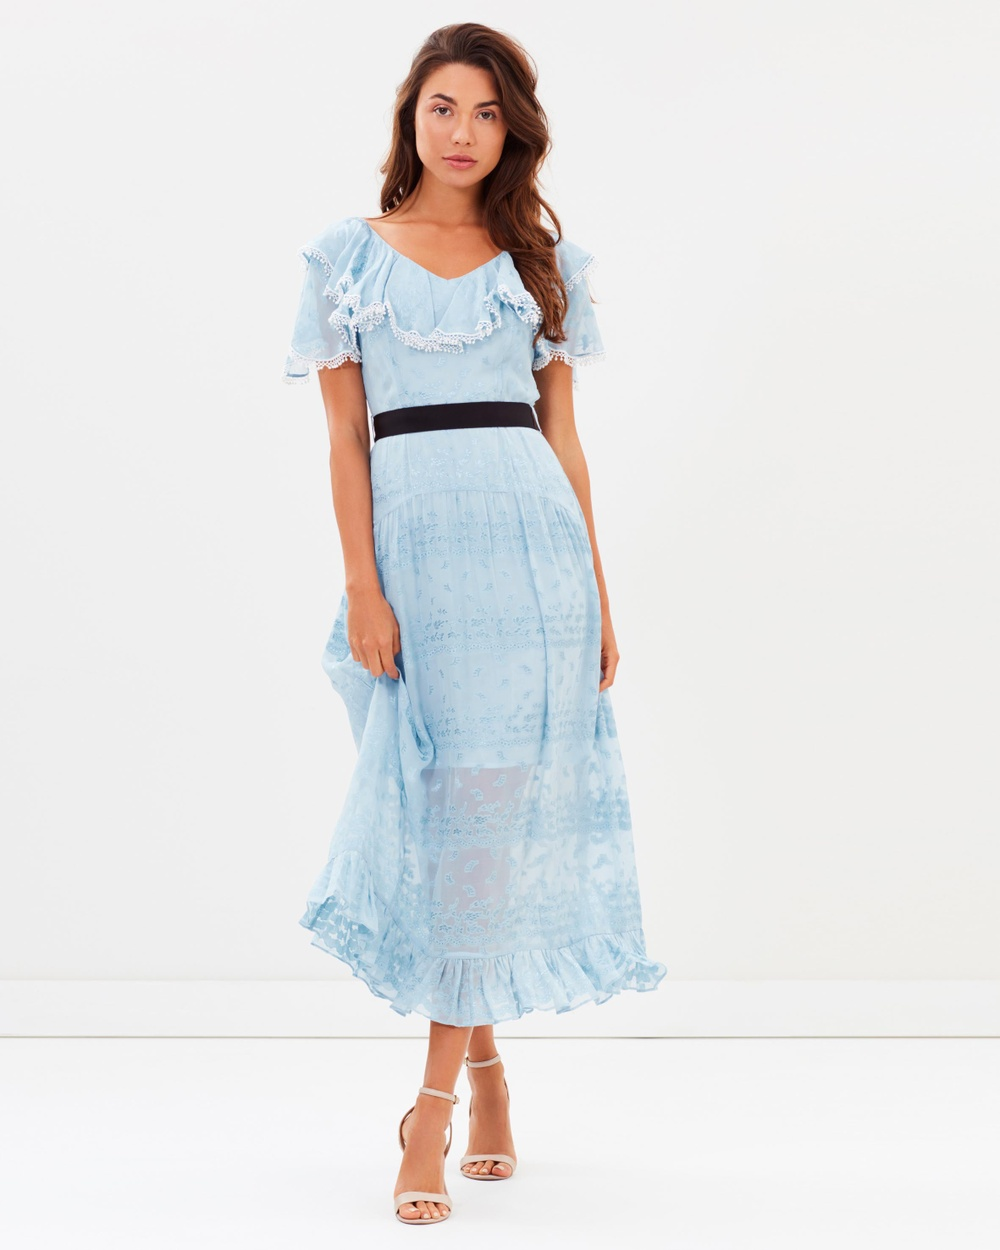 Perseverance Wisteria Jacquard Ruffled Midi Dress Bridesmaid Dresses Pale Blue Wisteria Jacquard Ruffled Midi Dress